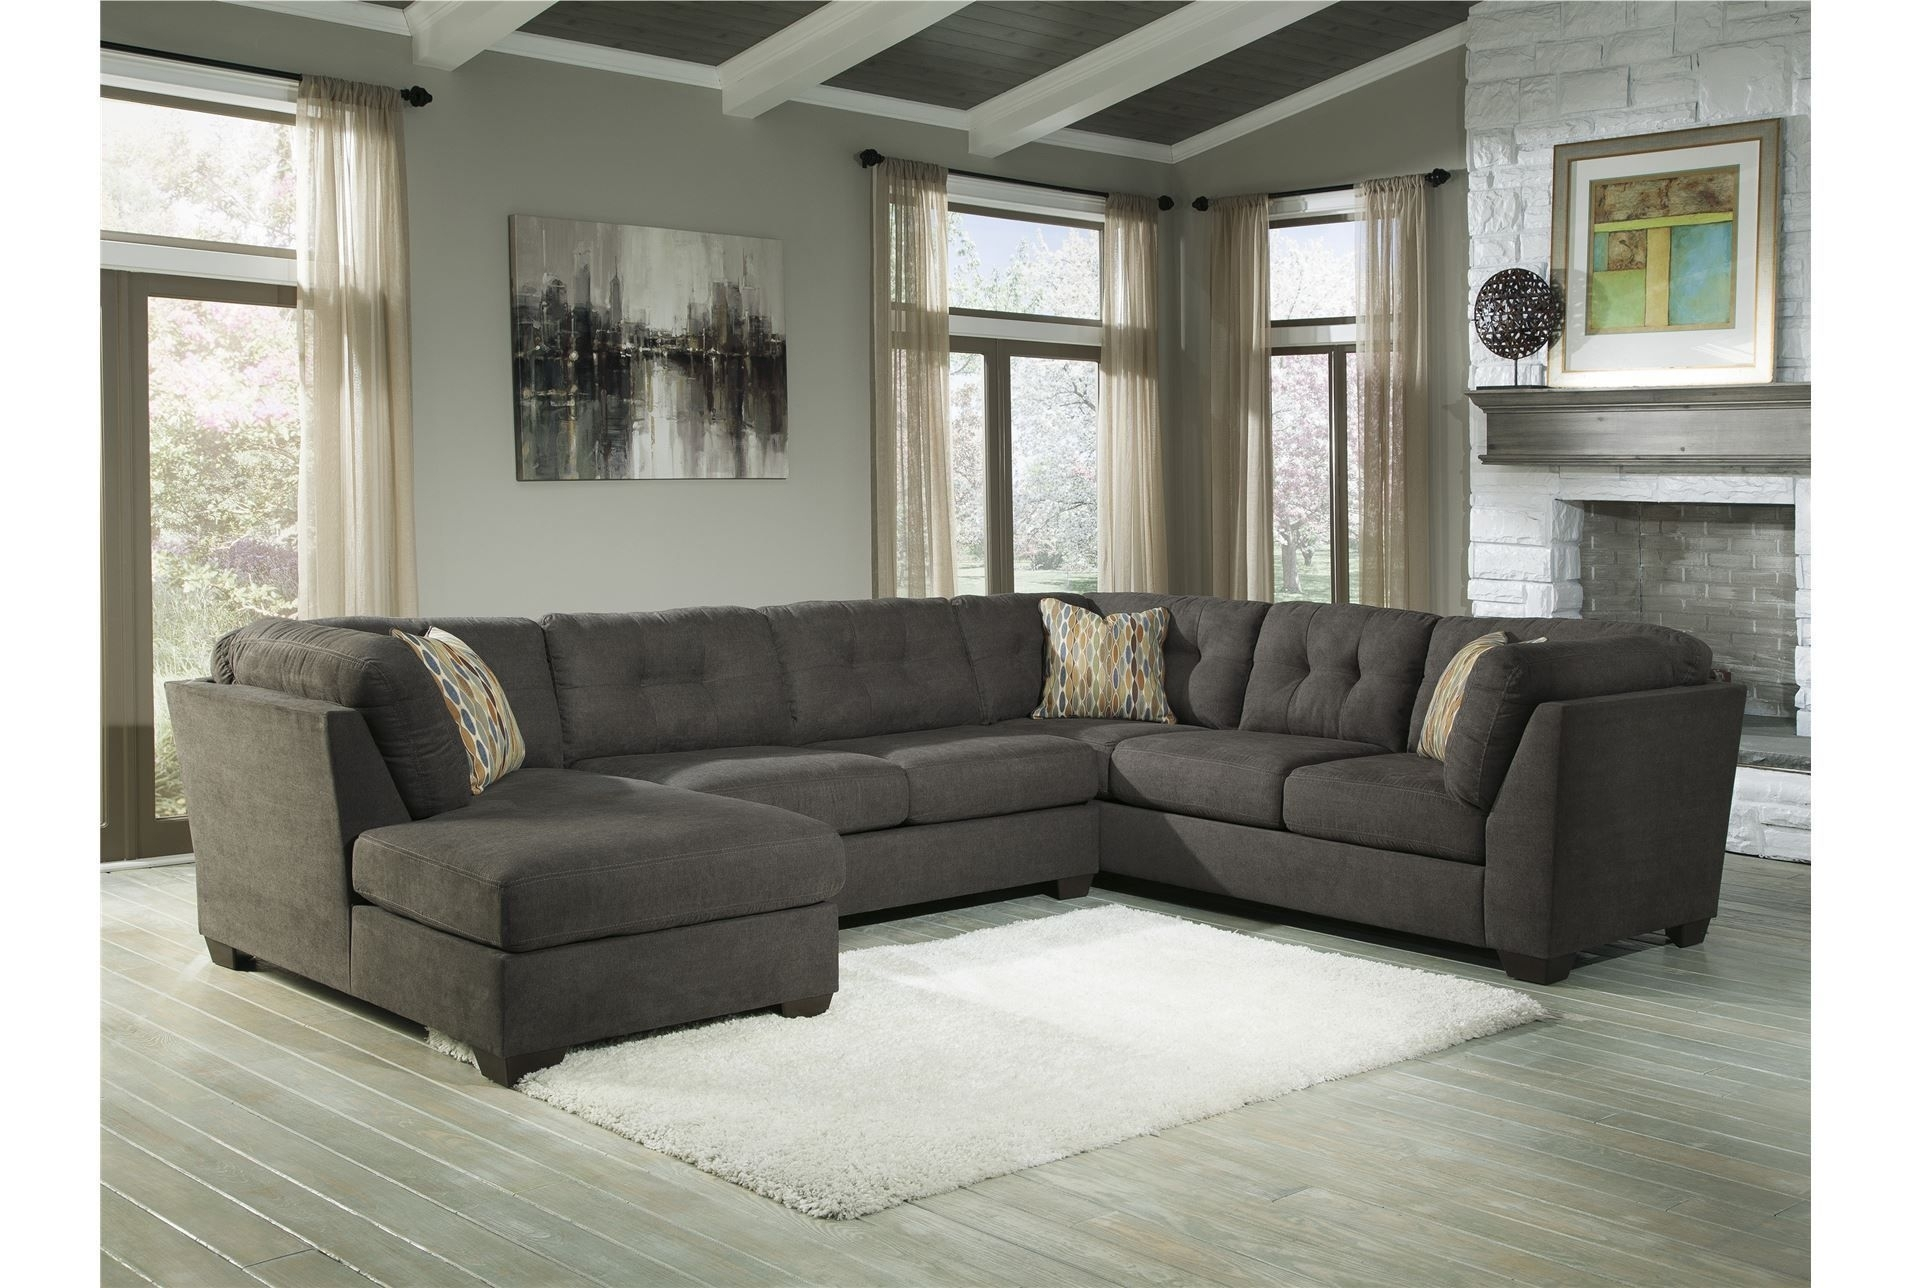 Delta City Steel 3 Piece Sectional W/laf Chaise  Living Room Option With Regard To Haven Blue Steel 3 Piece Sectionals (Image 11 of 25)